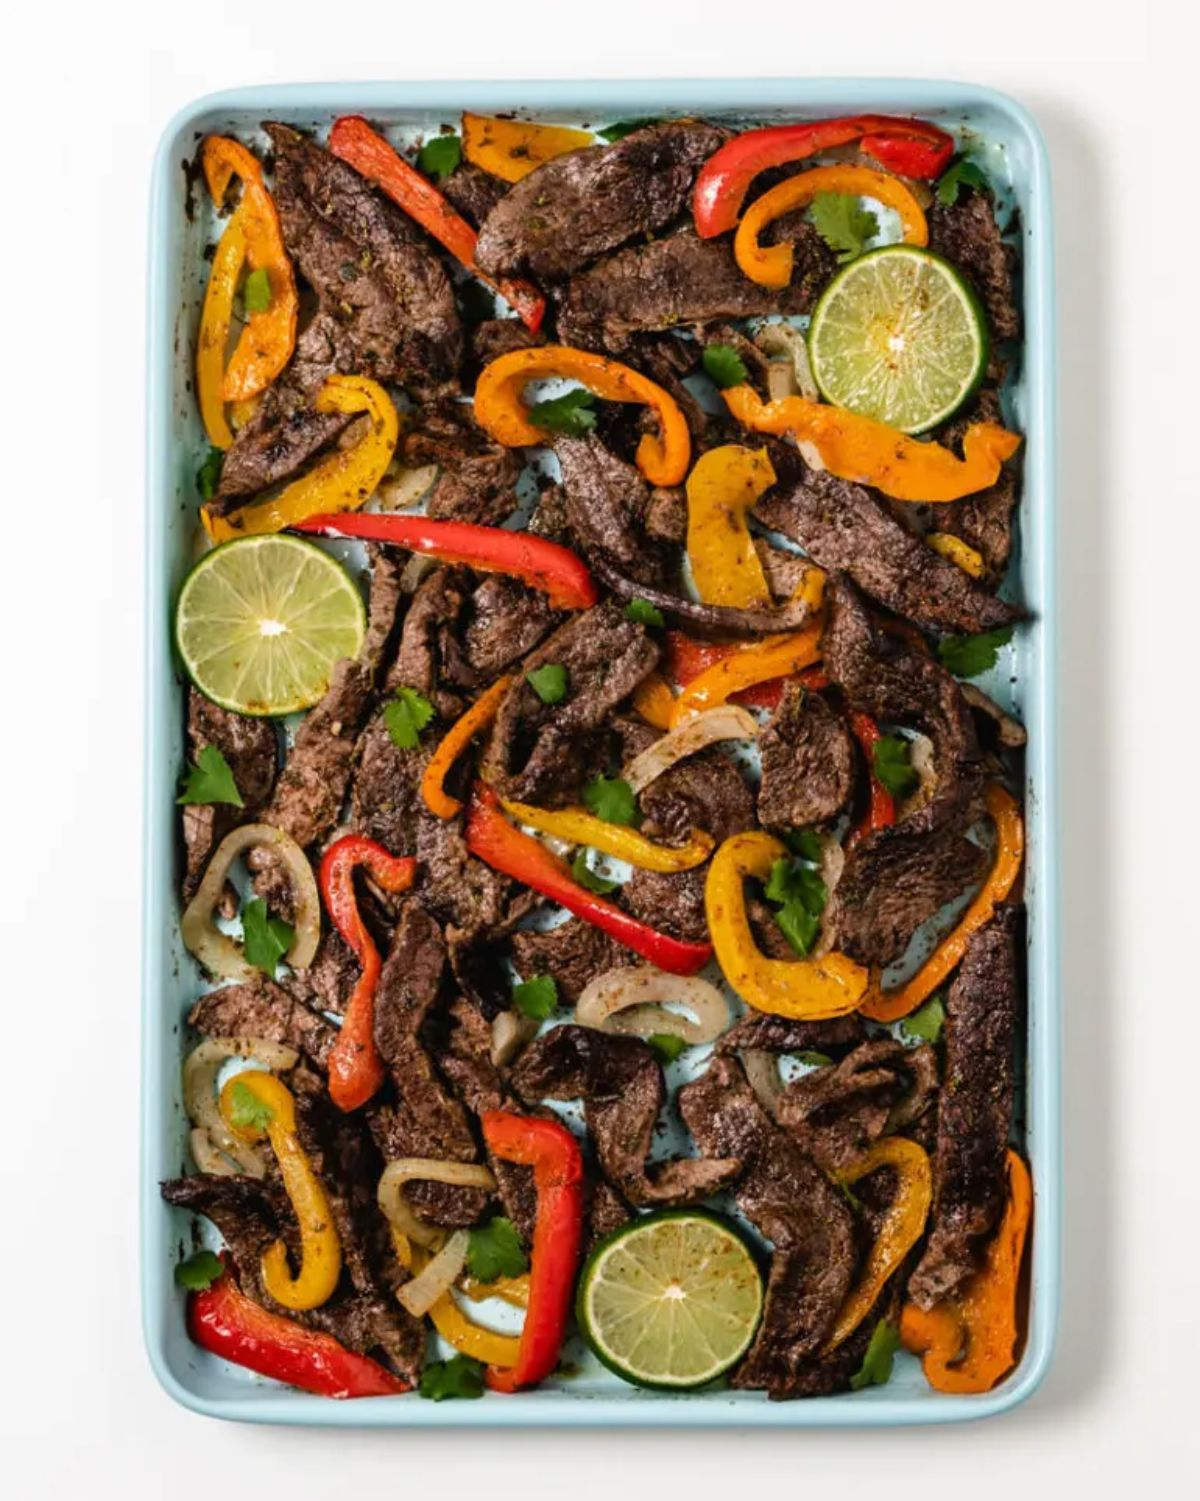 A rectangular roasting dish filled with steak slices, peppers, onions and lime slices.